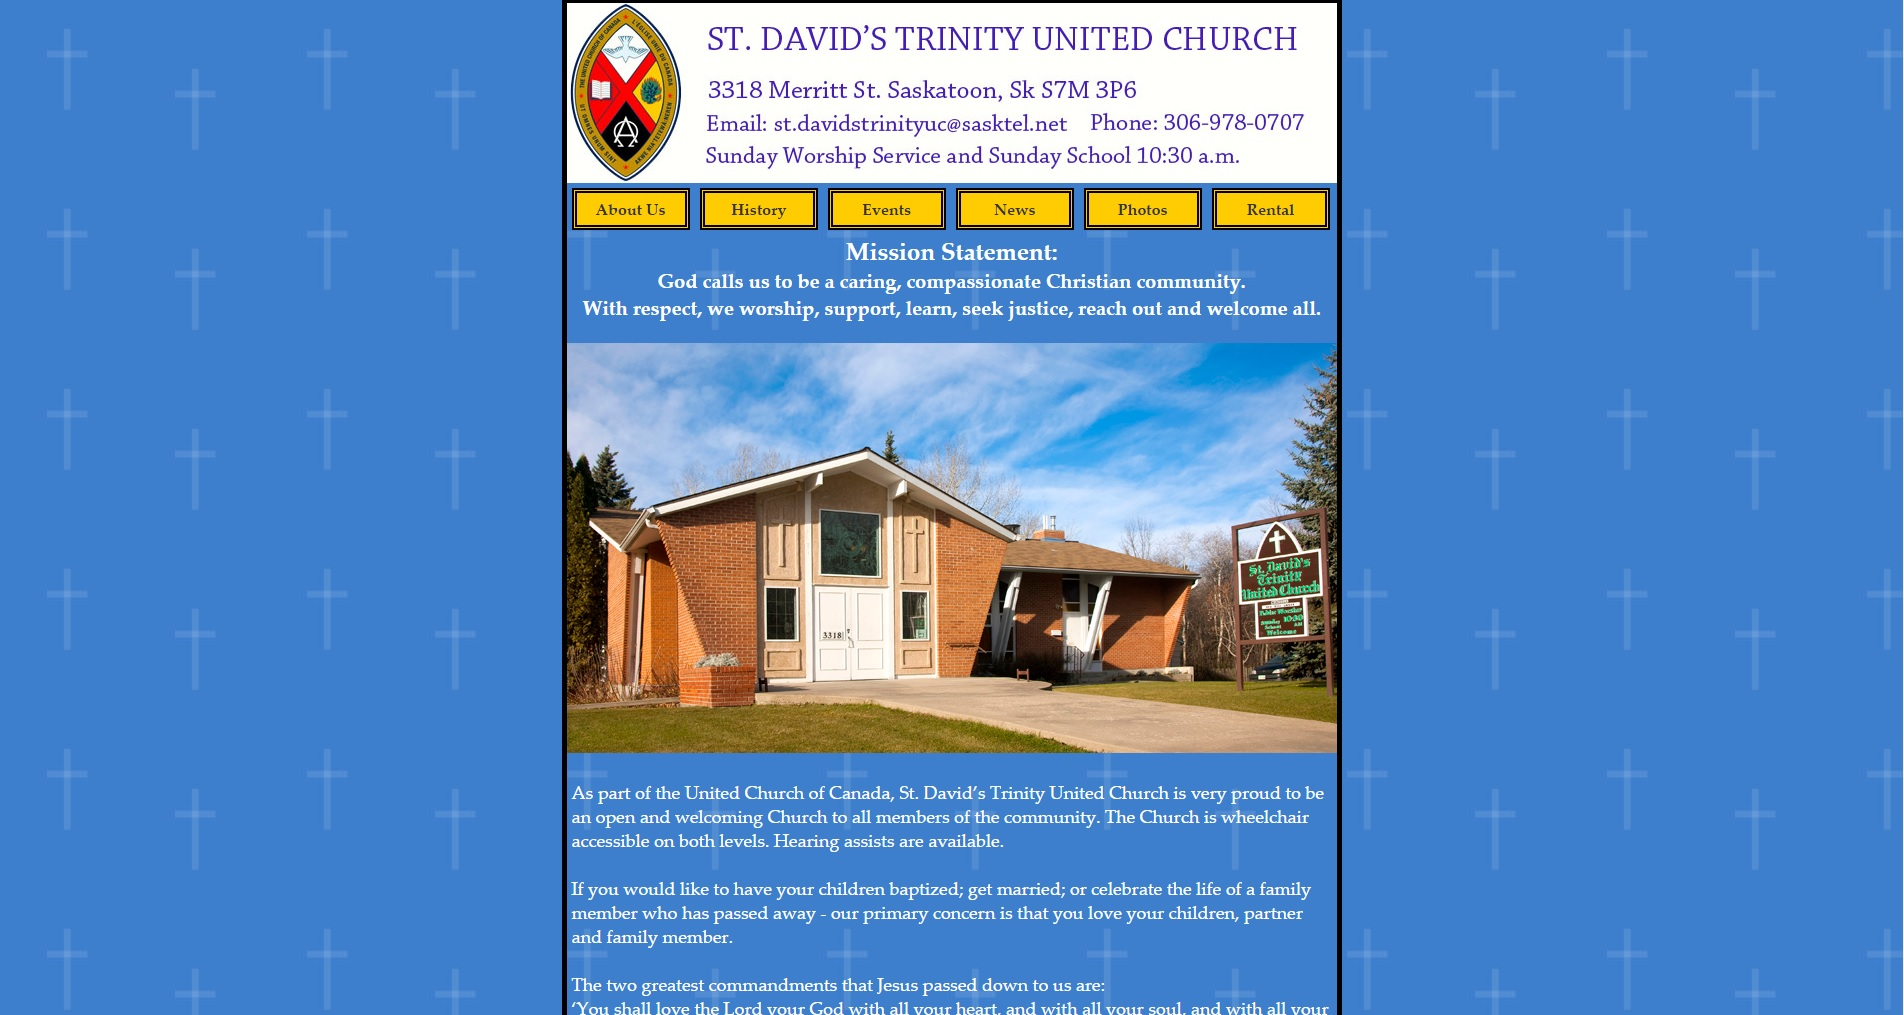 St. David's Trinity United Church Website